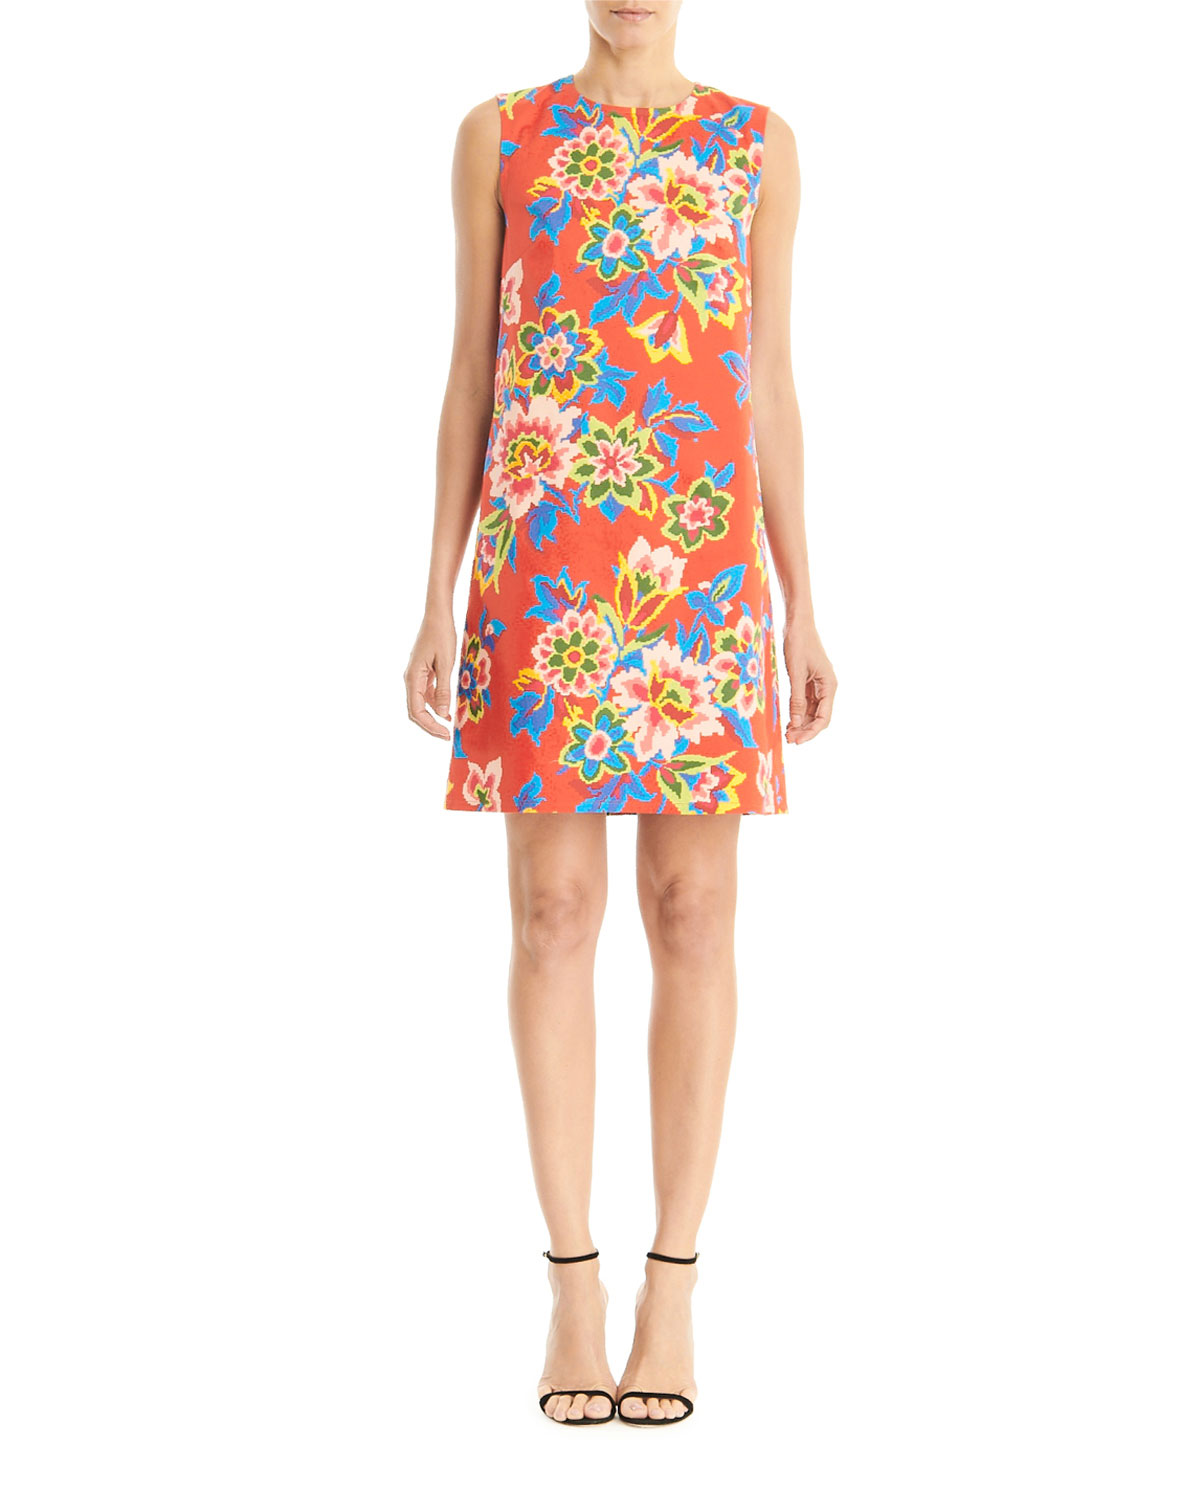 Carolina Herrera Floral Sleeveless Shift Dress